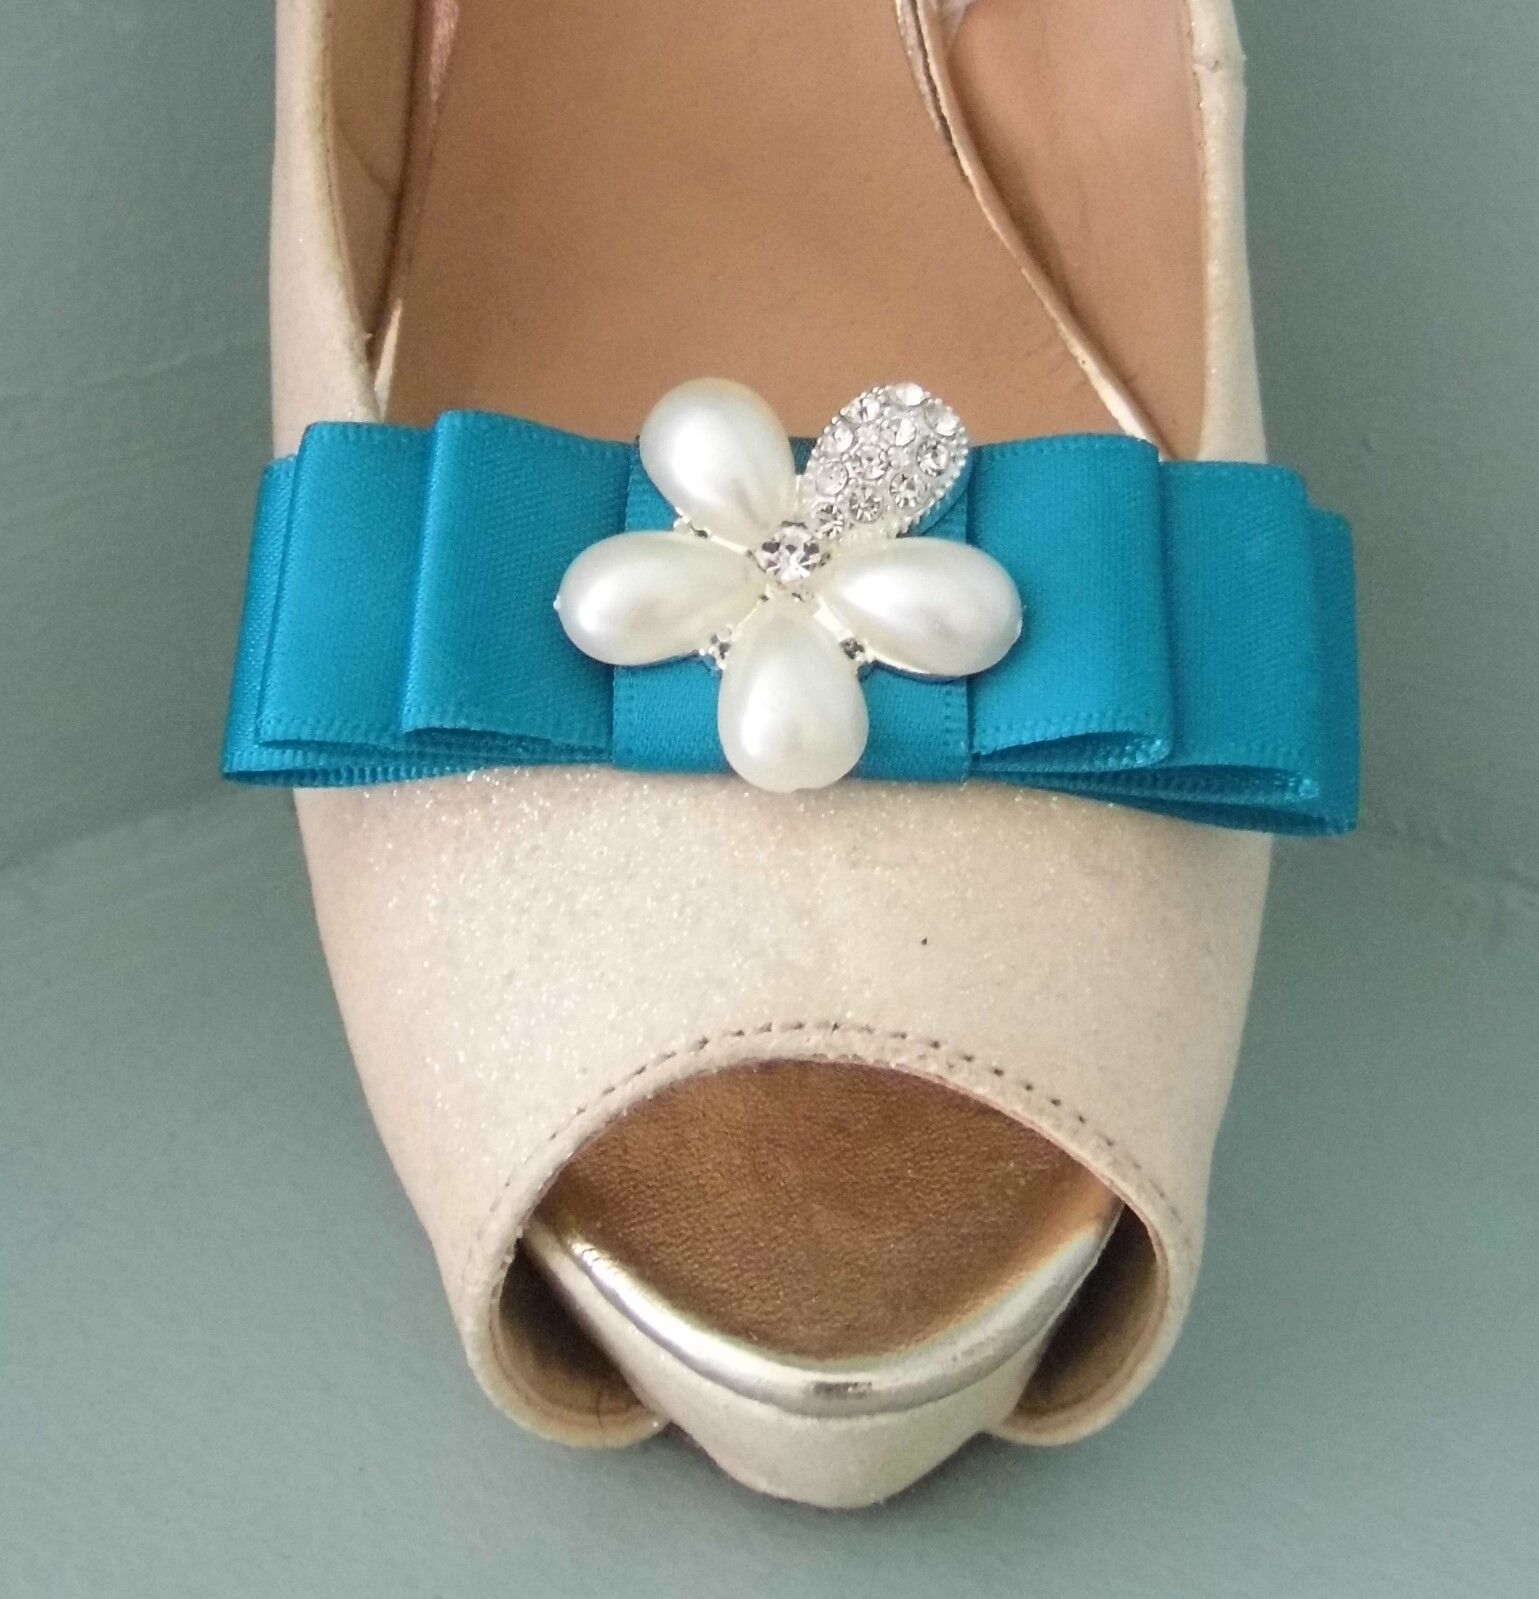 2 Teal Satin Bow Clips for Shoes with Pearl & Diamante Flower Centre